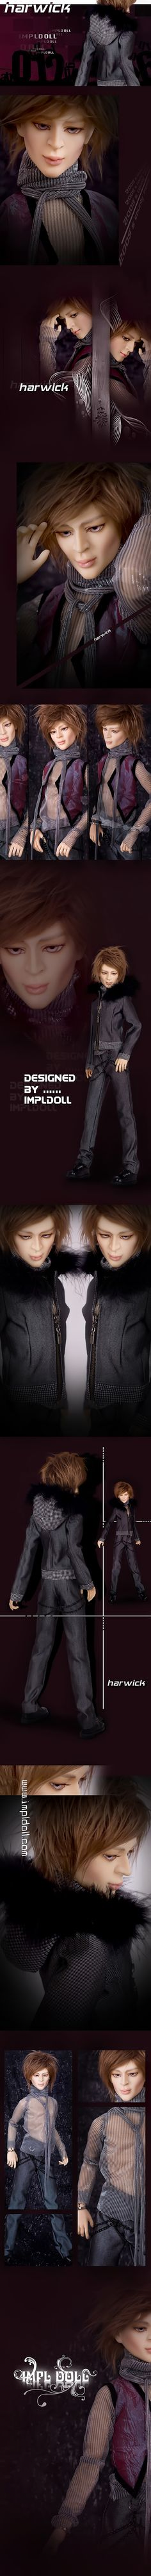 Harwick, 64cm Impldoll Boy - BJD Dolls, Accessories - Alice's Collections